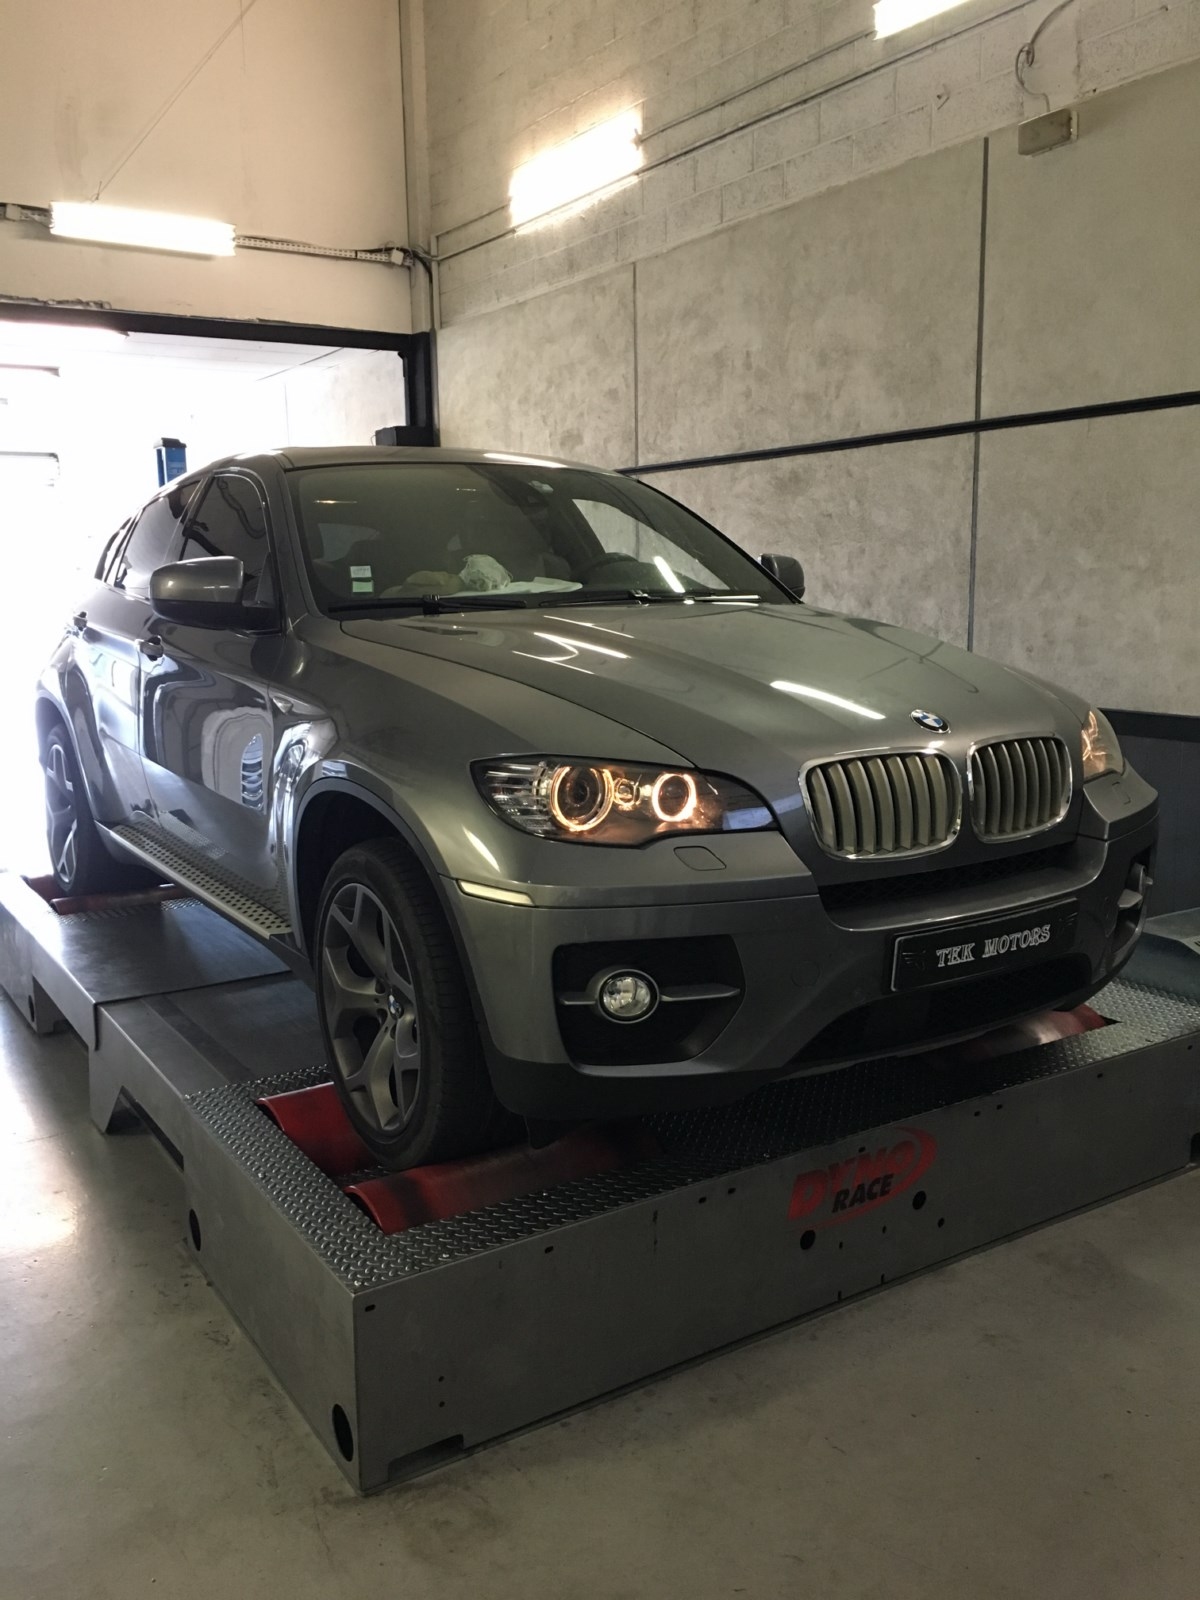 reprogrammation moteur bmw x6 3 0l 306cv i paris tek motors. Black Bedroom Furniture Sets. Home Design Ideas